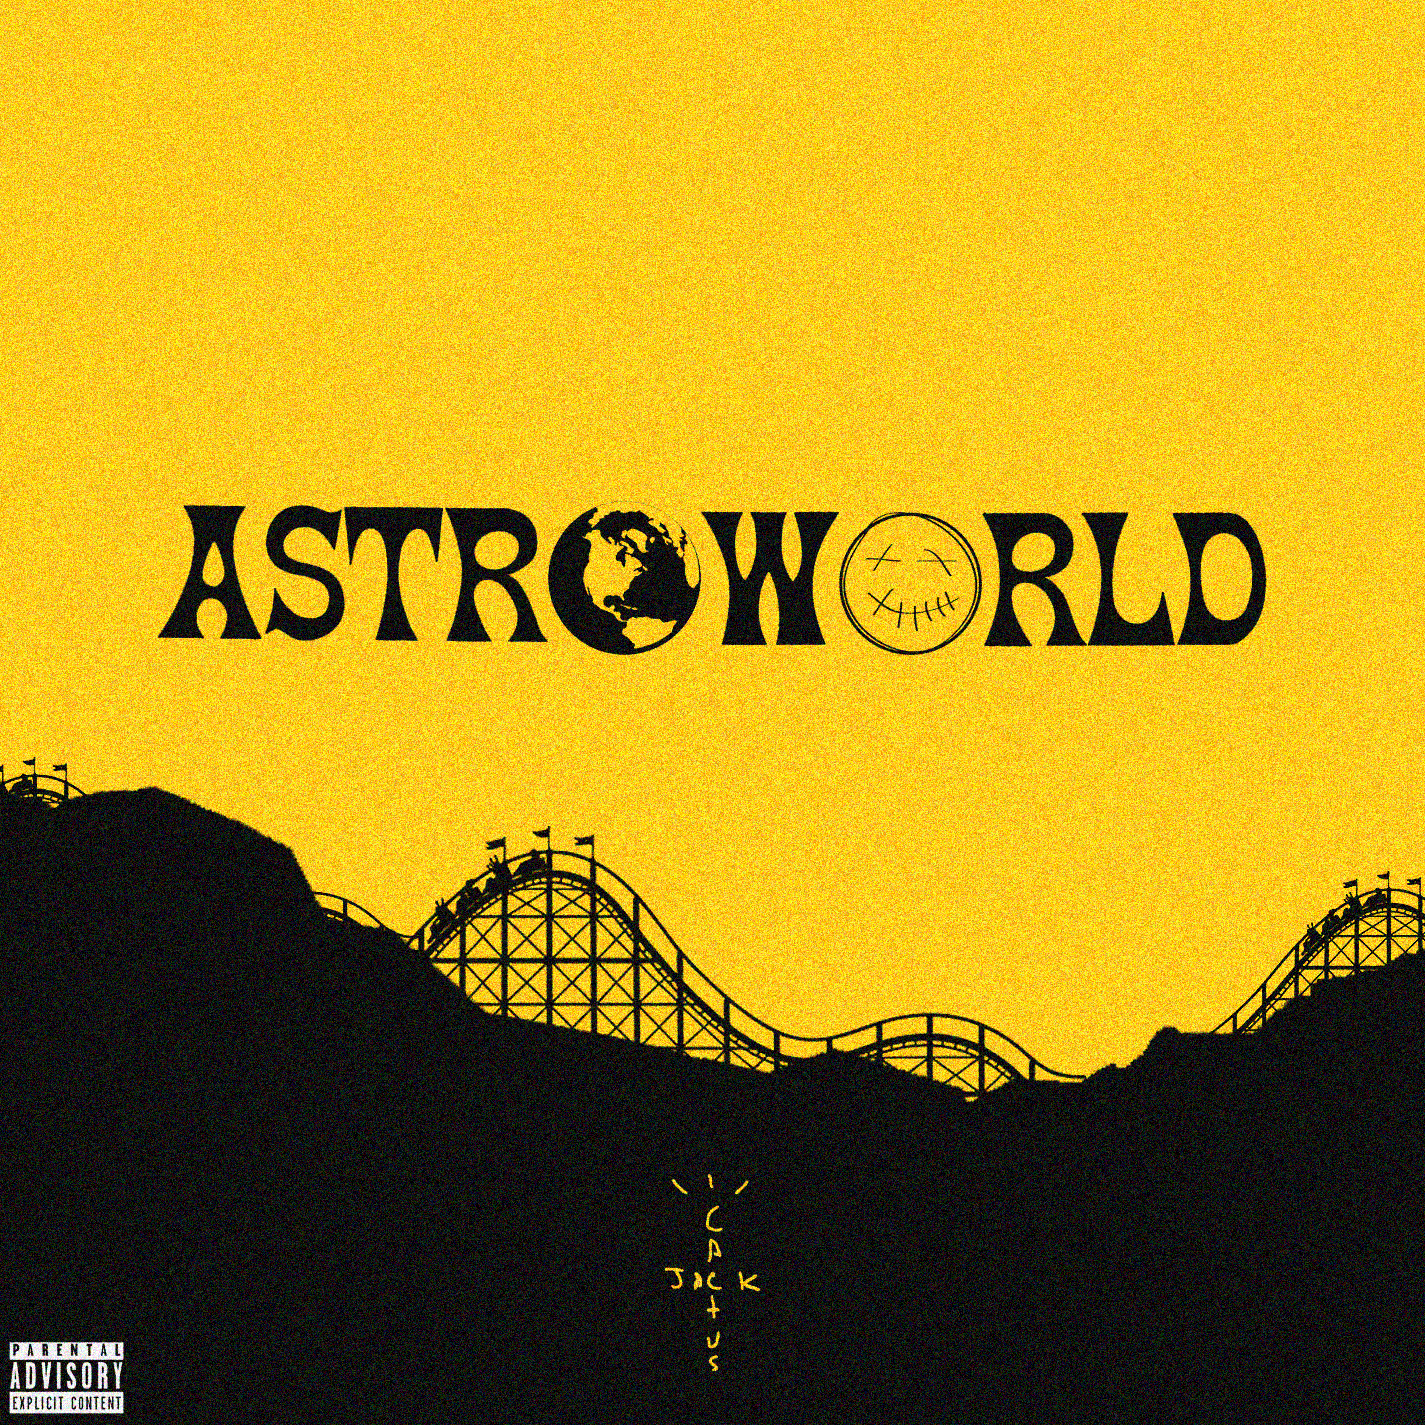 Astroworld Iphone Wallpapers Top Free Astroworld Iphone Backgrounds Wallpaperaccess